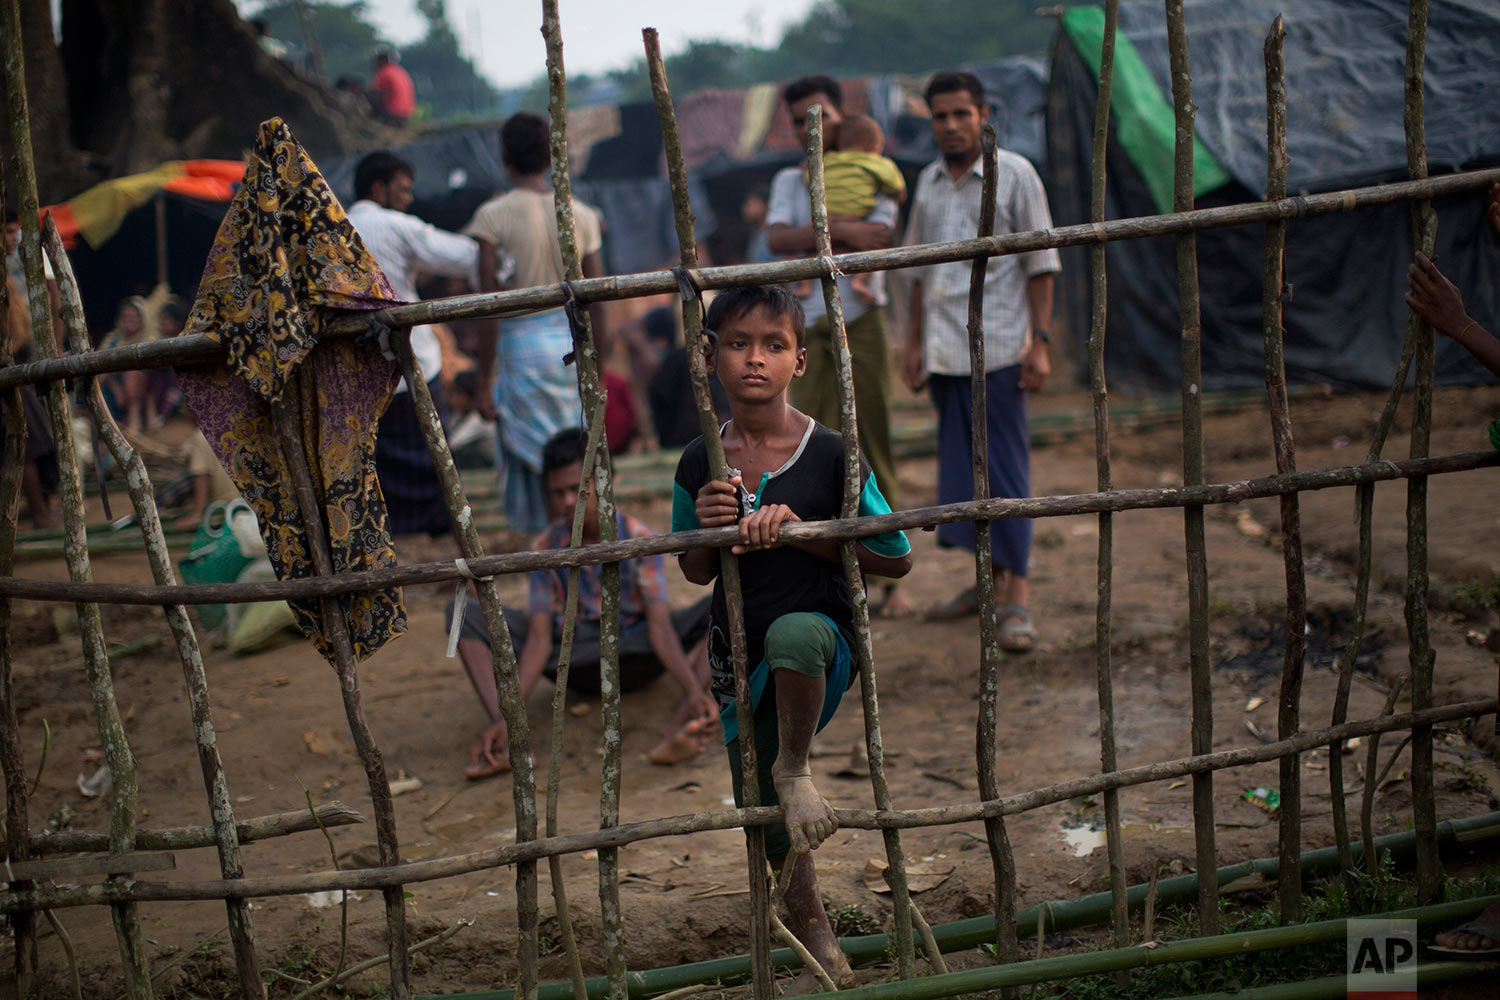 A Rohingya child, newly arrived from Myanmmar to the Bangladesh side of the border, stands by a wooden fence at Kutupalong refugee camp in Ukhia, Tuesday, Sept. 5, 2017. Bangladesh, one of the world's poorest countries, was already sheltering some 100,000 Rohingya refugees before another 123,000 flooded in after Aug. 25, according to the U.N. refugee agency's latest estimate on Tuesday. (AP Photo/Bernat Armangue)